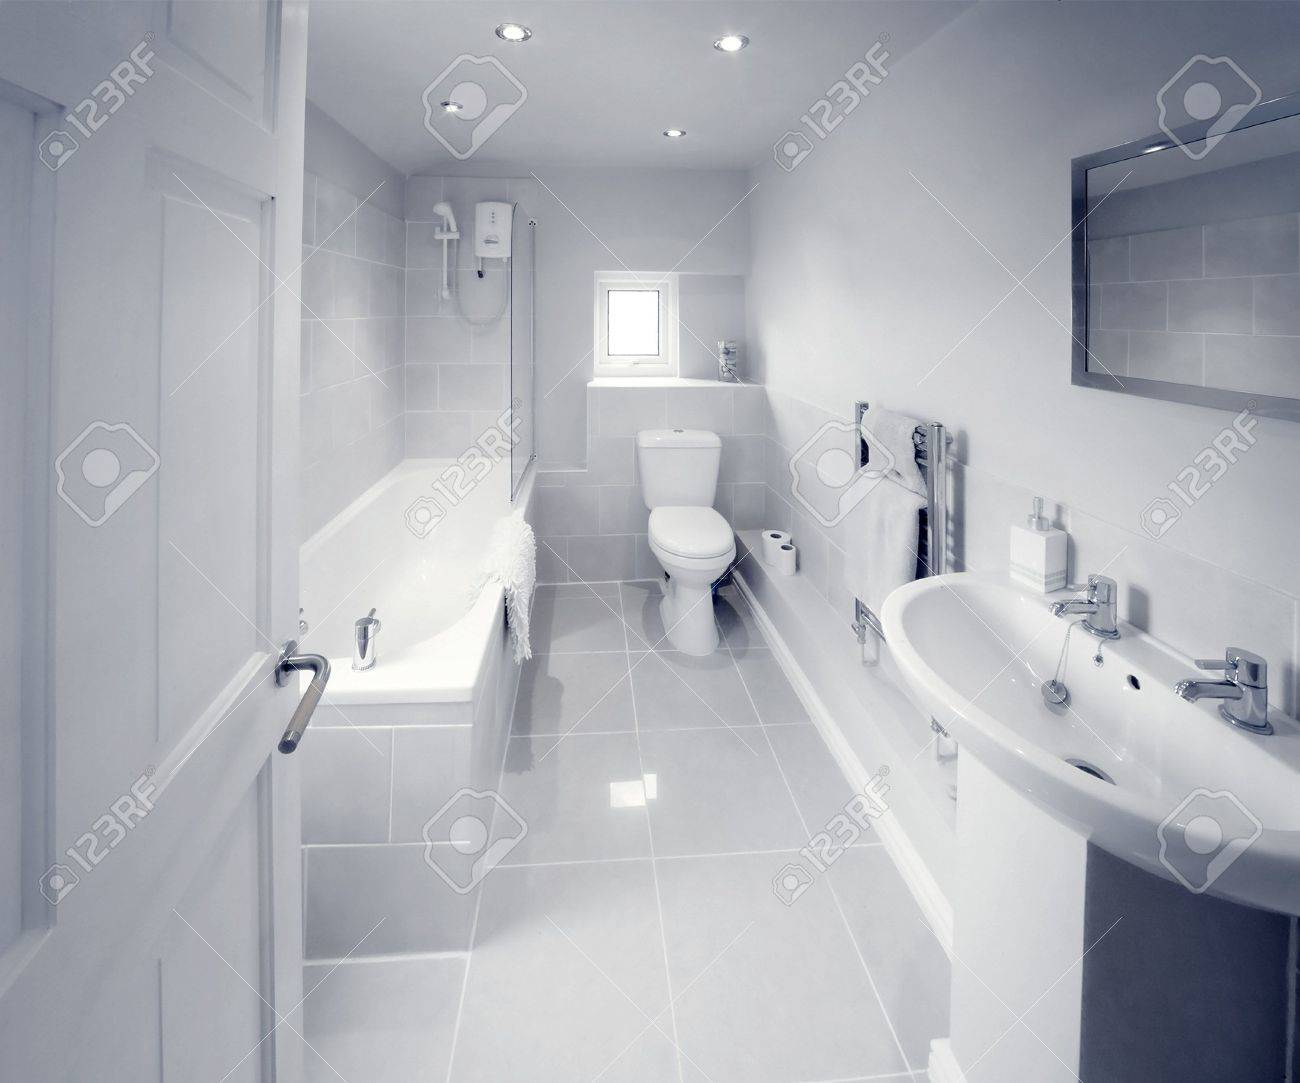 Bathroom Sink Shower Loo Toilet Bath Sink Stock Photo, Picture And ...